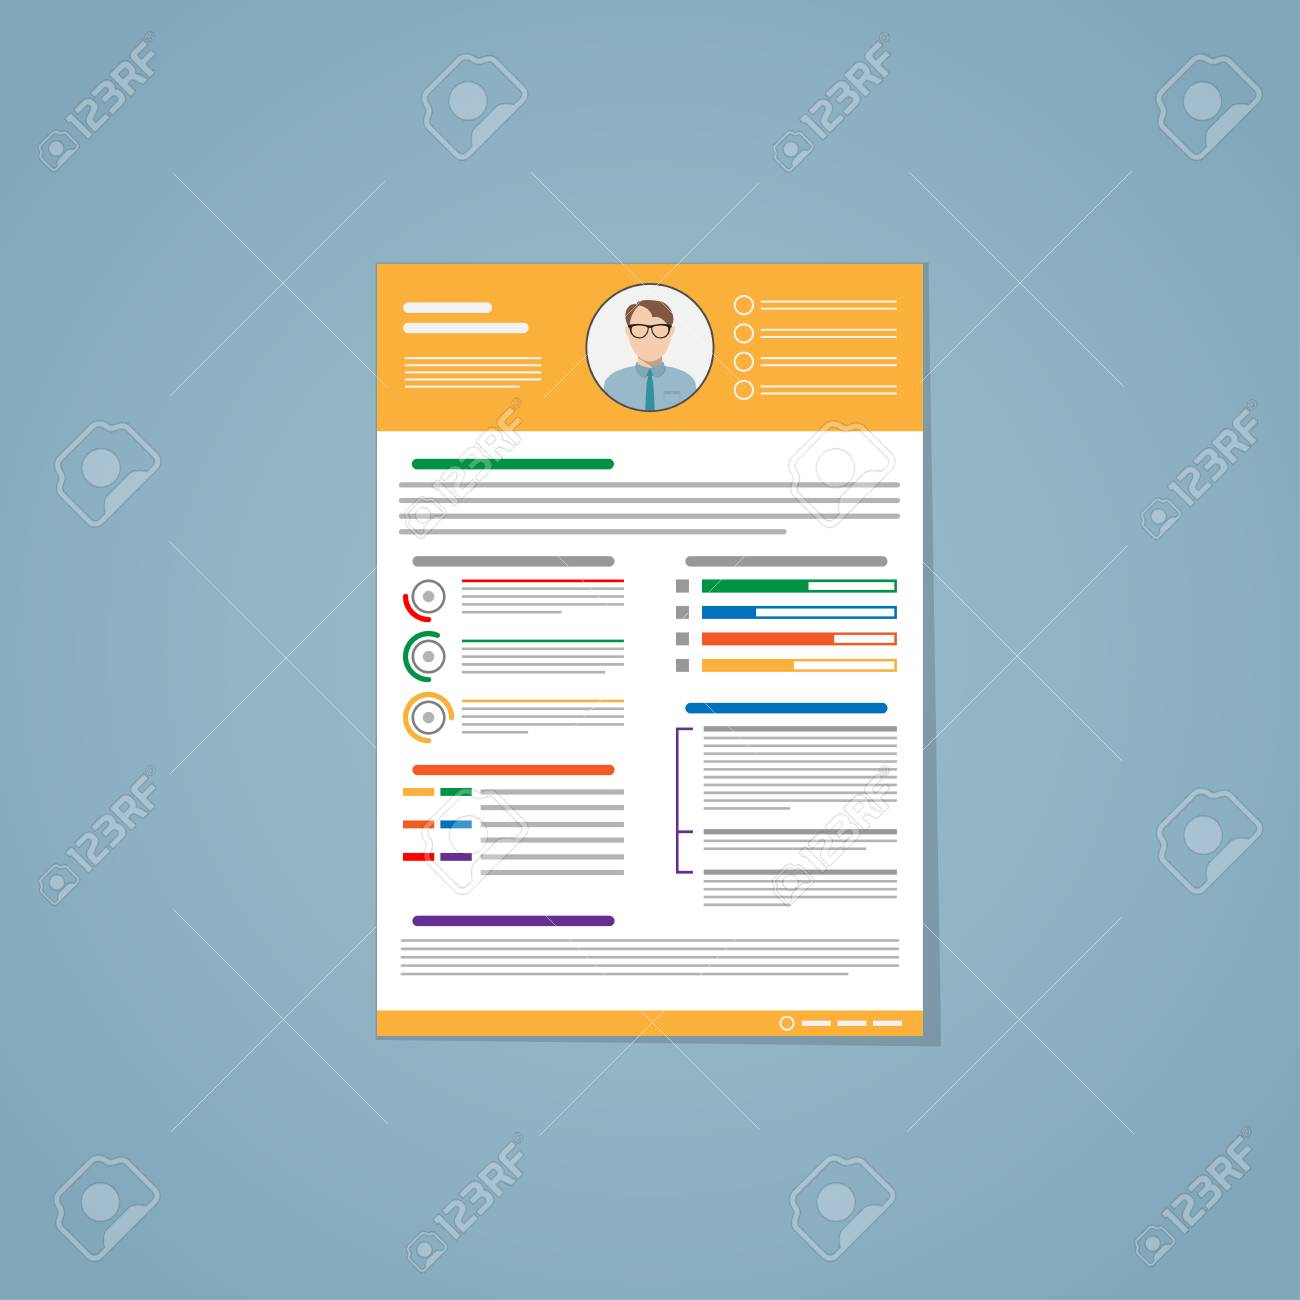 Resume In Flat Style With Yellow Lines And A Photo Of The Candidate It Consists